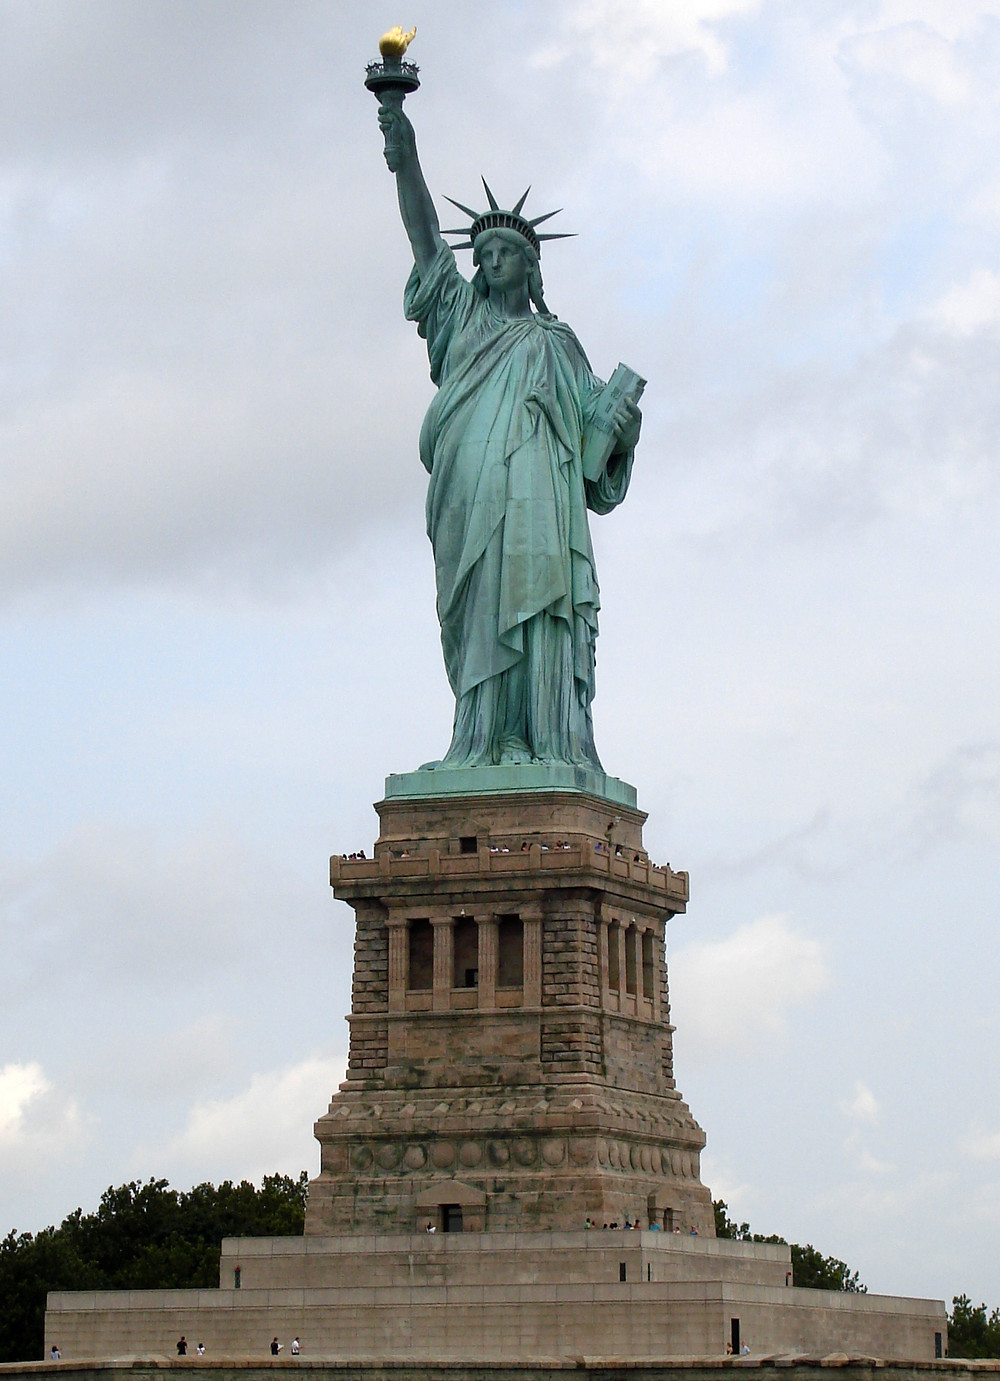 A symbol of our great immigrant country.